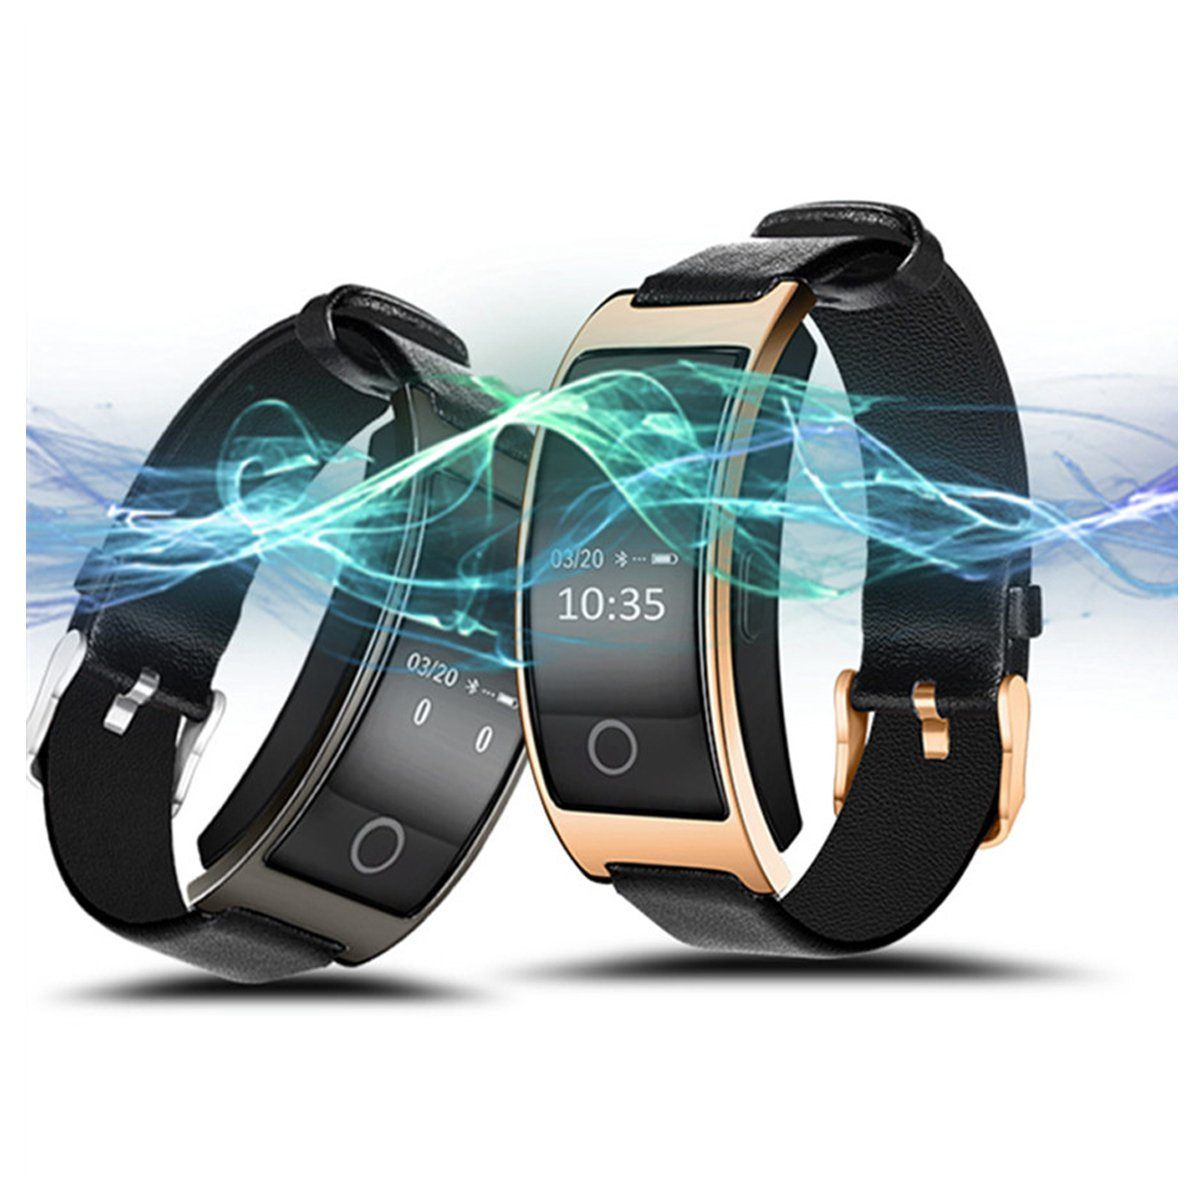 Multifunctional Life Wrist Watch with Skin-friendly Leather Strap & LED Screen